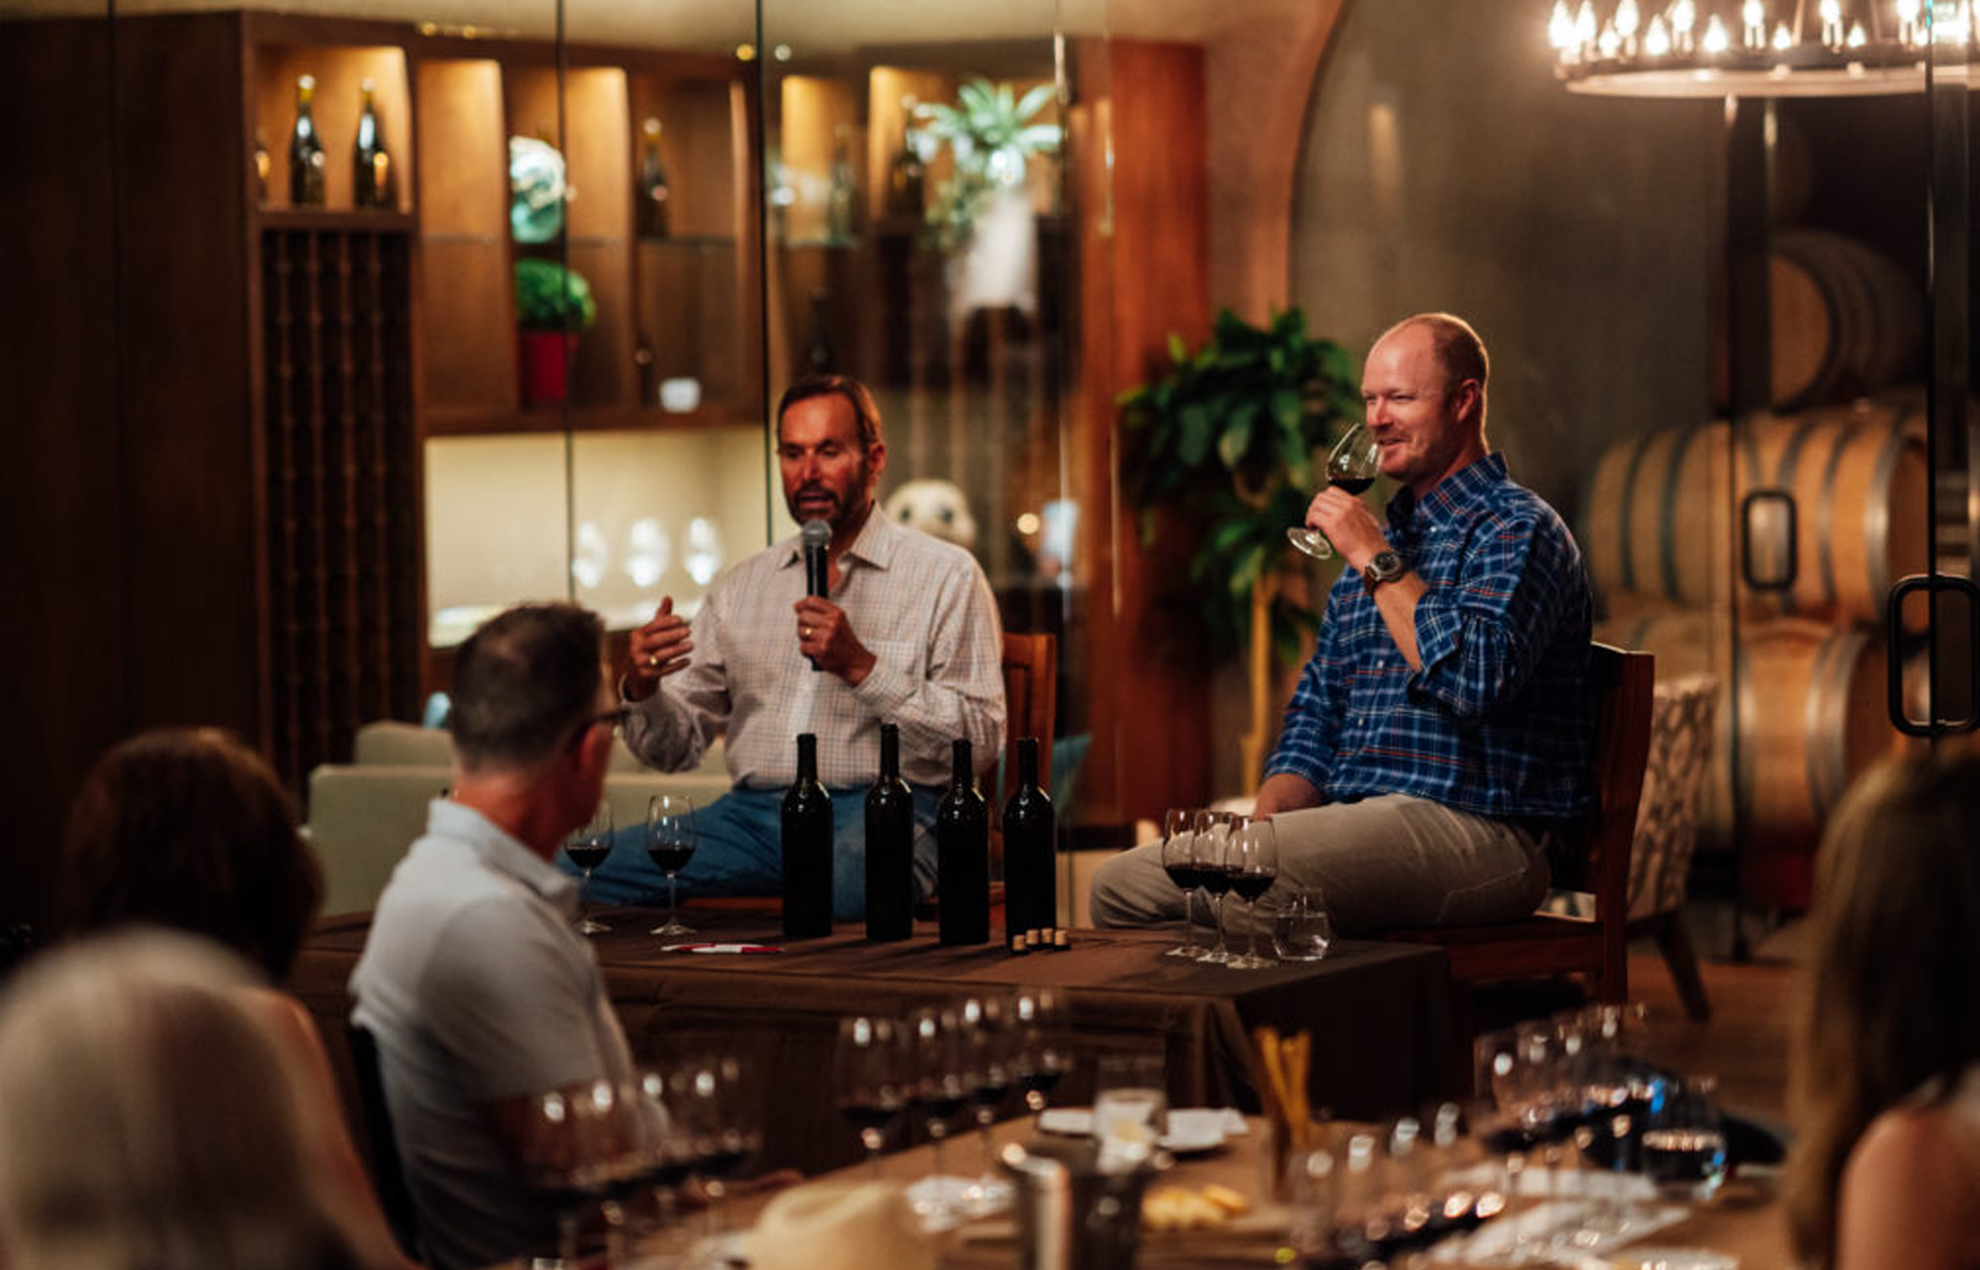 Two men talking in front of a crowd at a wine tasting in a wine cellar.